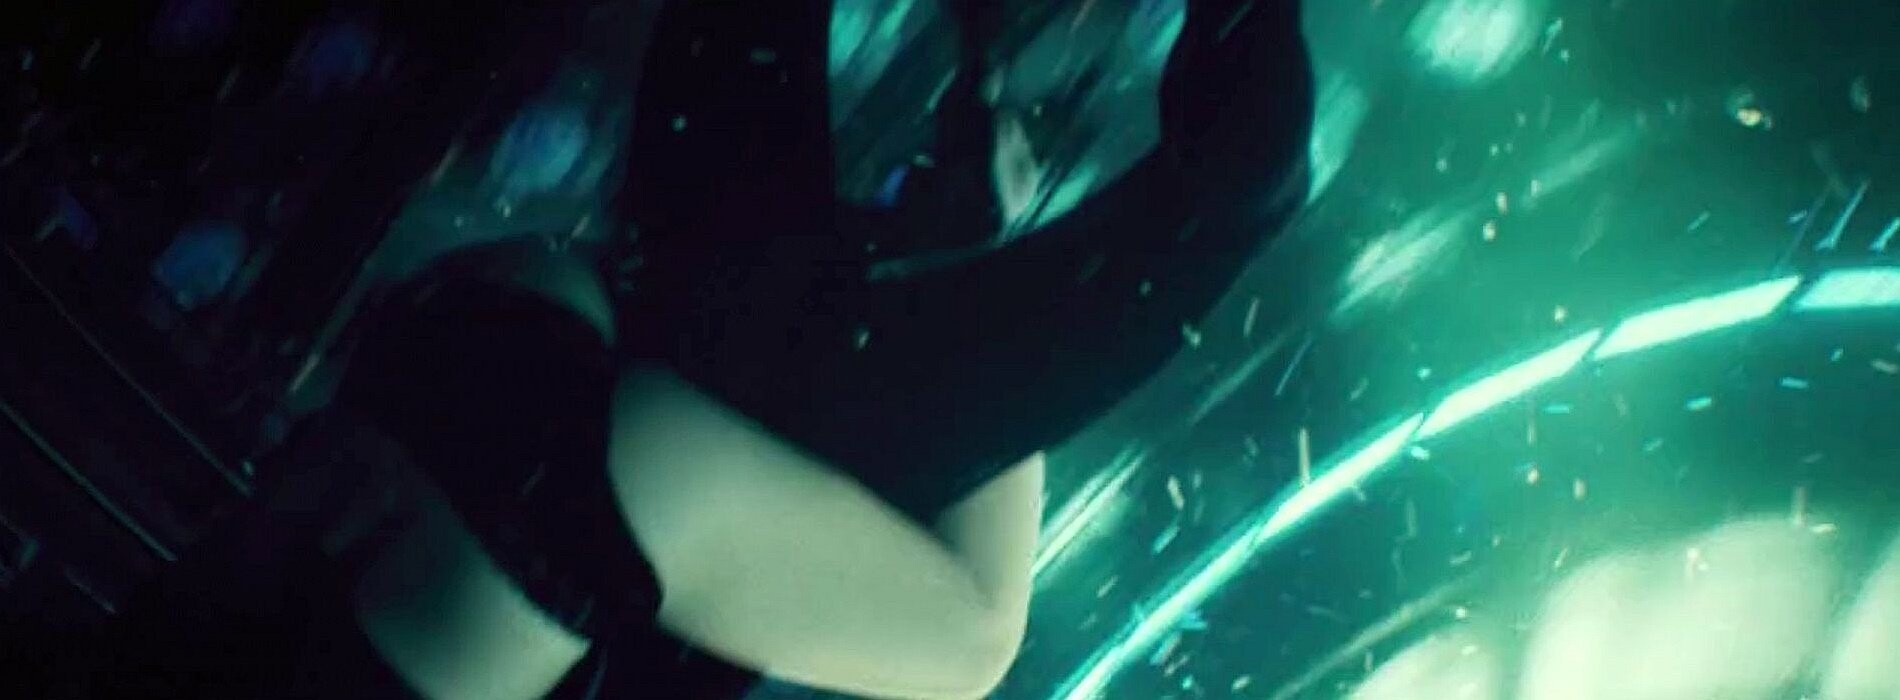 Rebecca Ferguson in Mission Impossible Rogue Nation 2015 fappenings.com 9